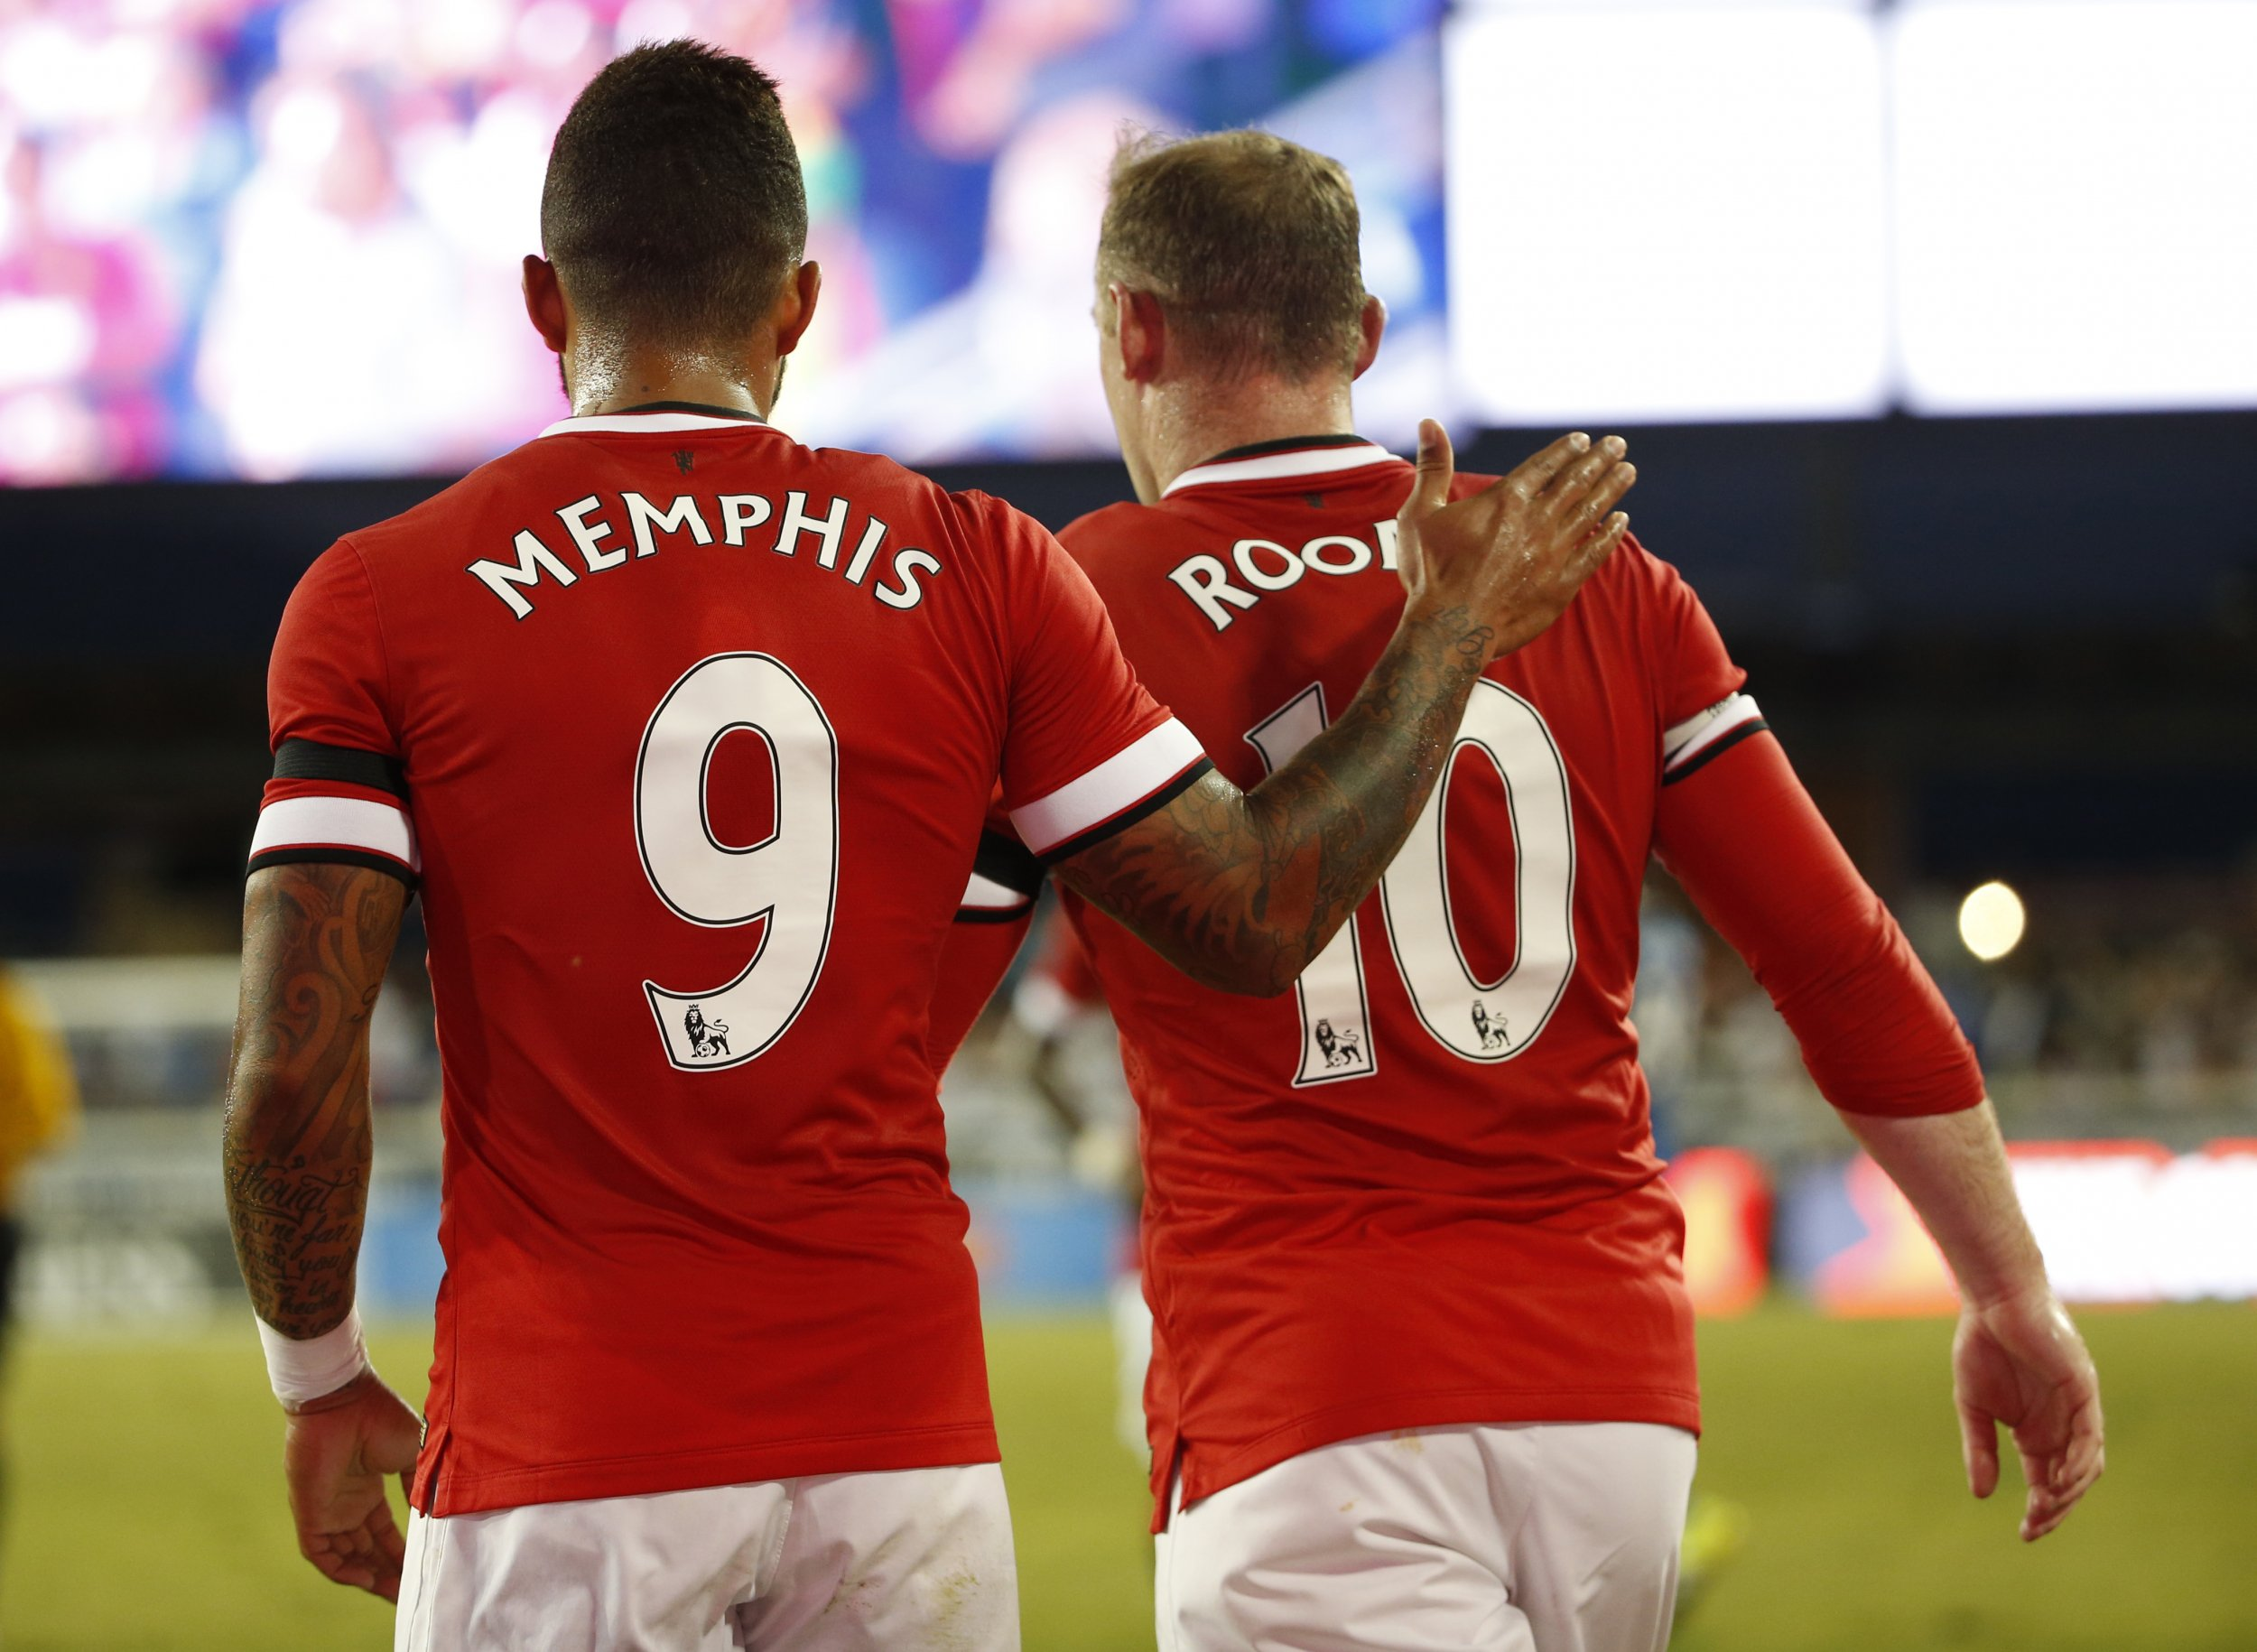 Memphis Depay, left, with Manchester United captain Wayne Rooney.